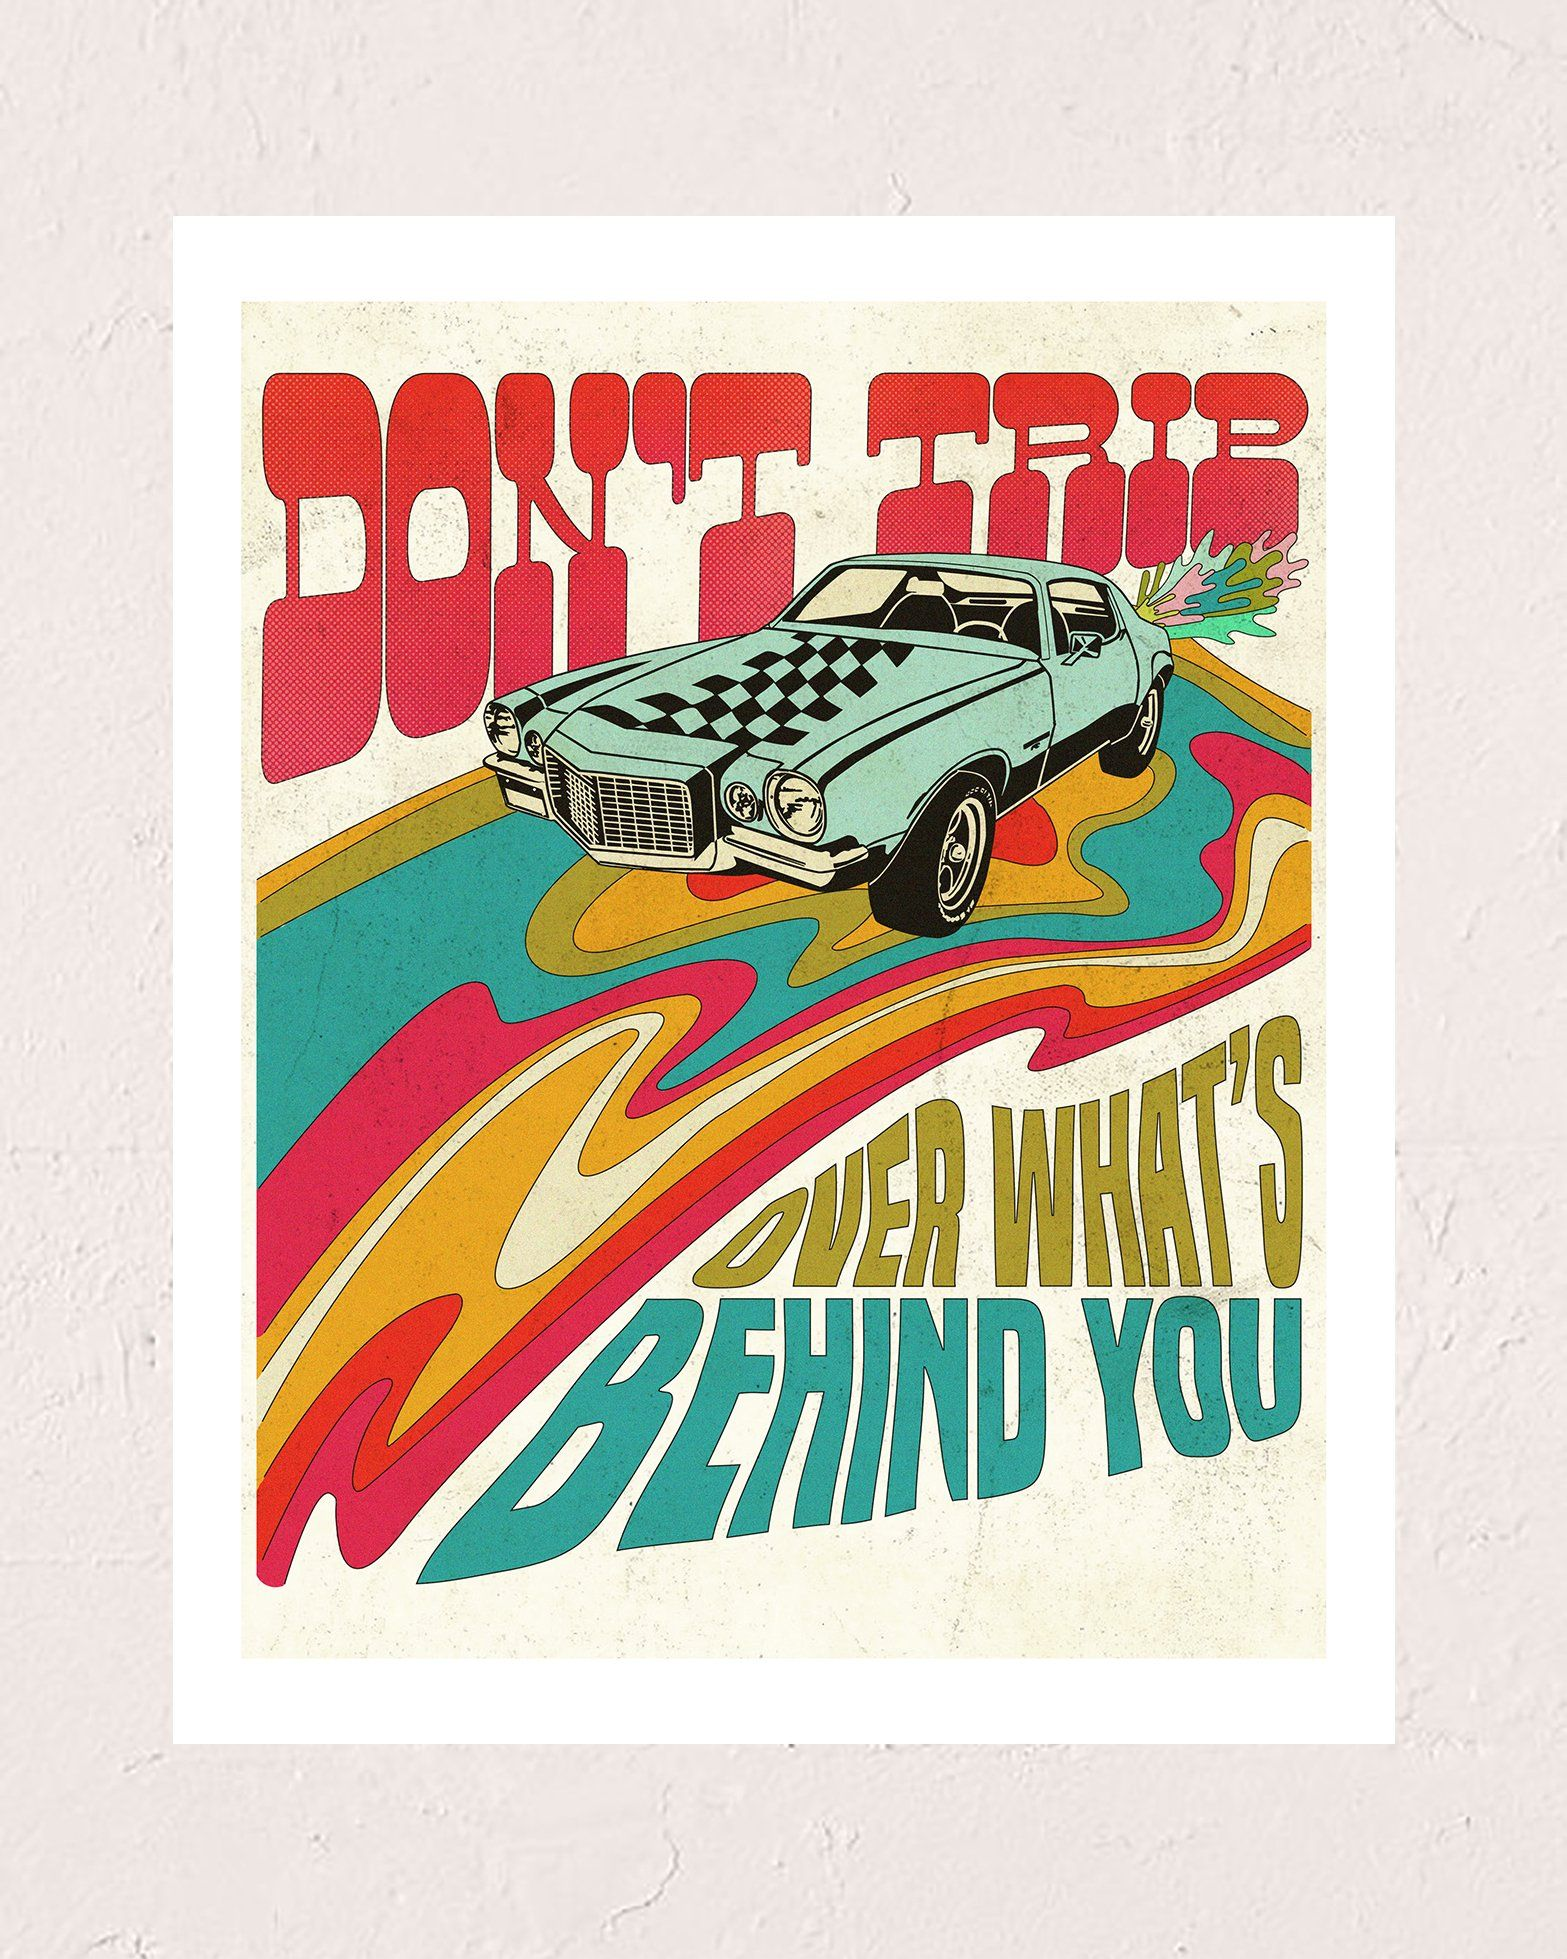 Don't trip over what's behind you. Comes in two sizes: 8x10 and 11x14 in. With every purchase, we donate 10% of profits to Mental Health America.